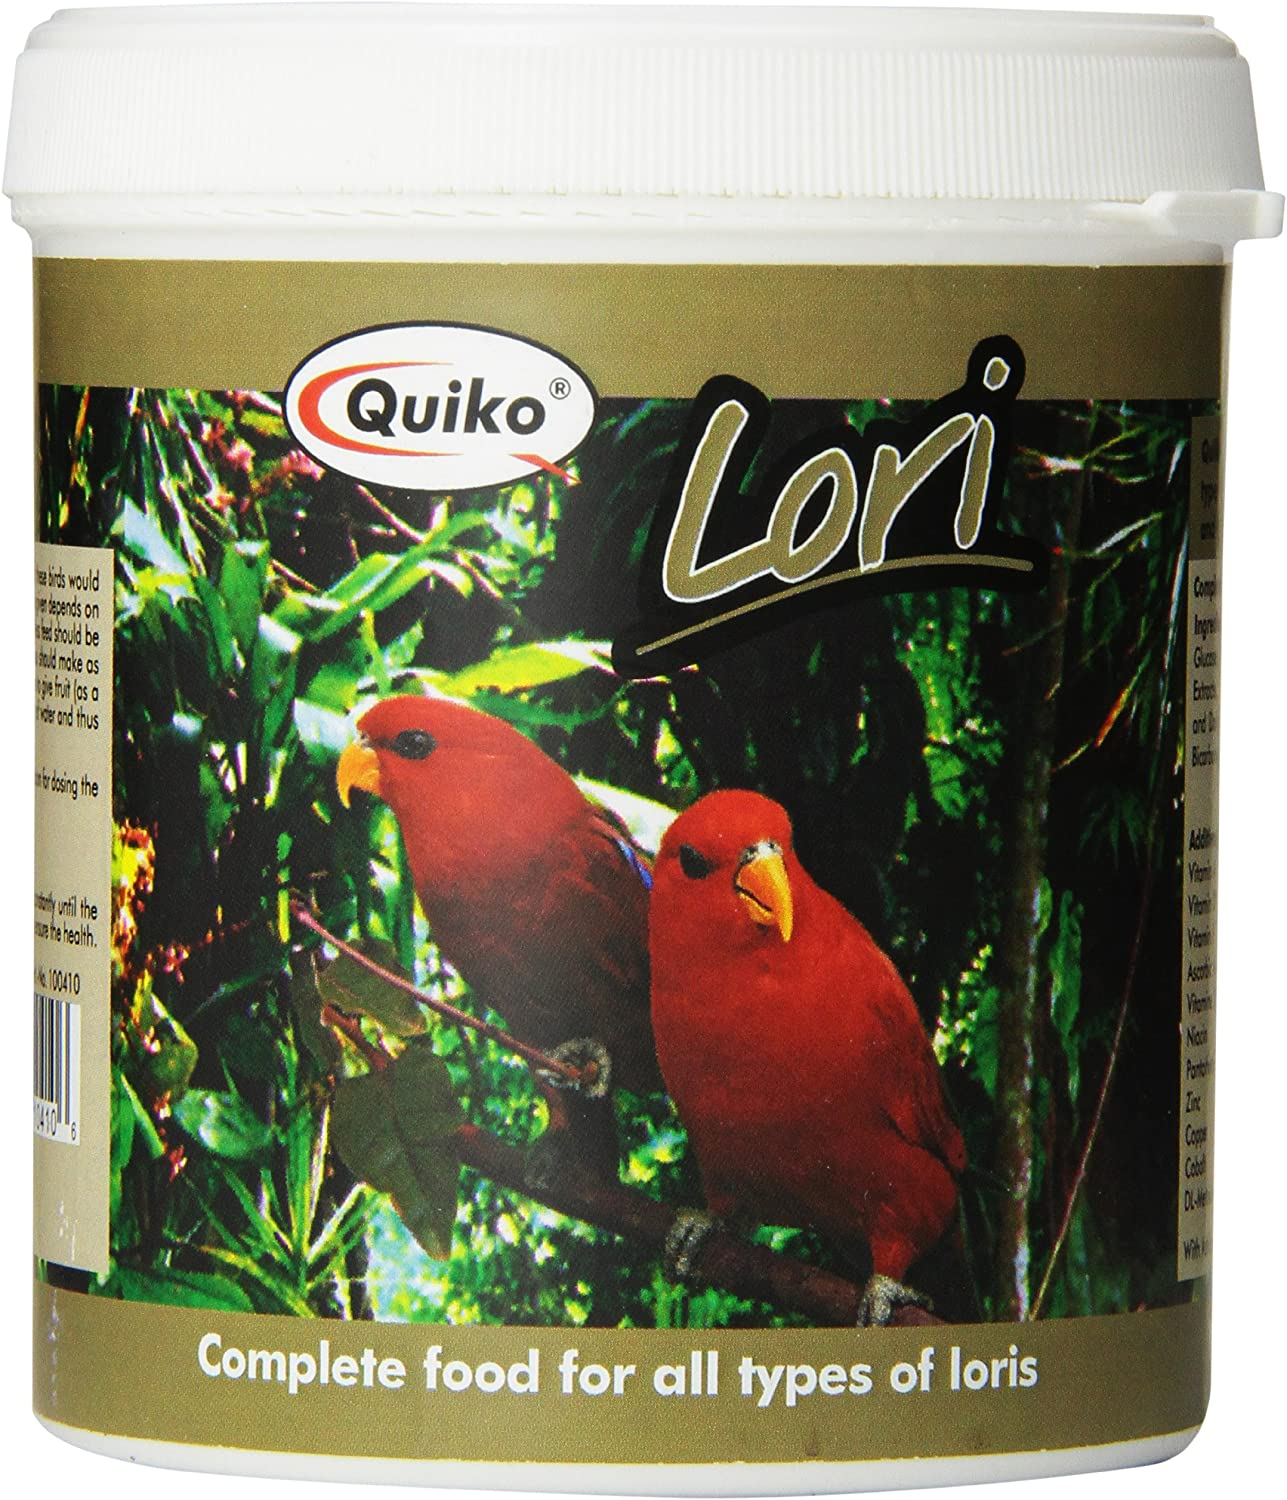 Quiko Lori  Complete Food For Nectar Eating Birds, 12.37 Ounce Recloseable Container